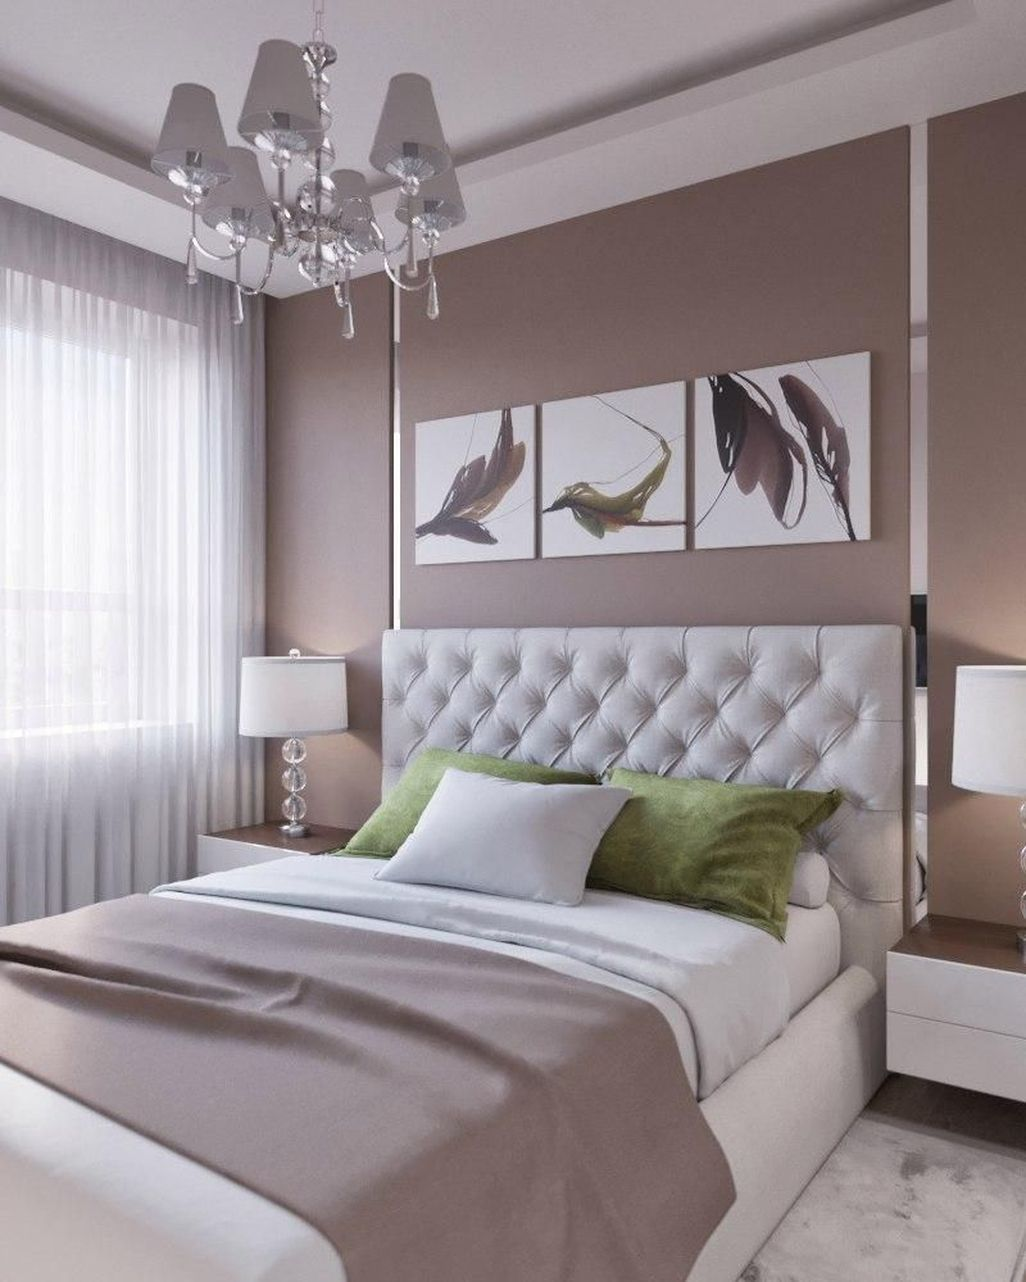 unique and simple ceiling design also master bedroom inspiration taupe light blue rh pinterest